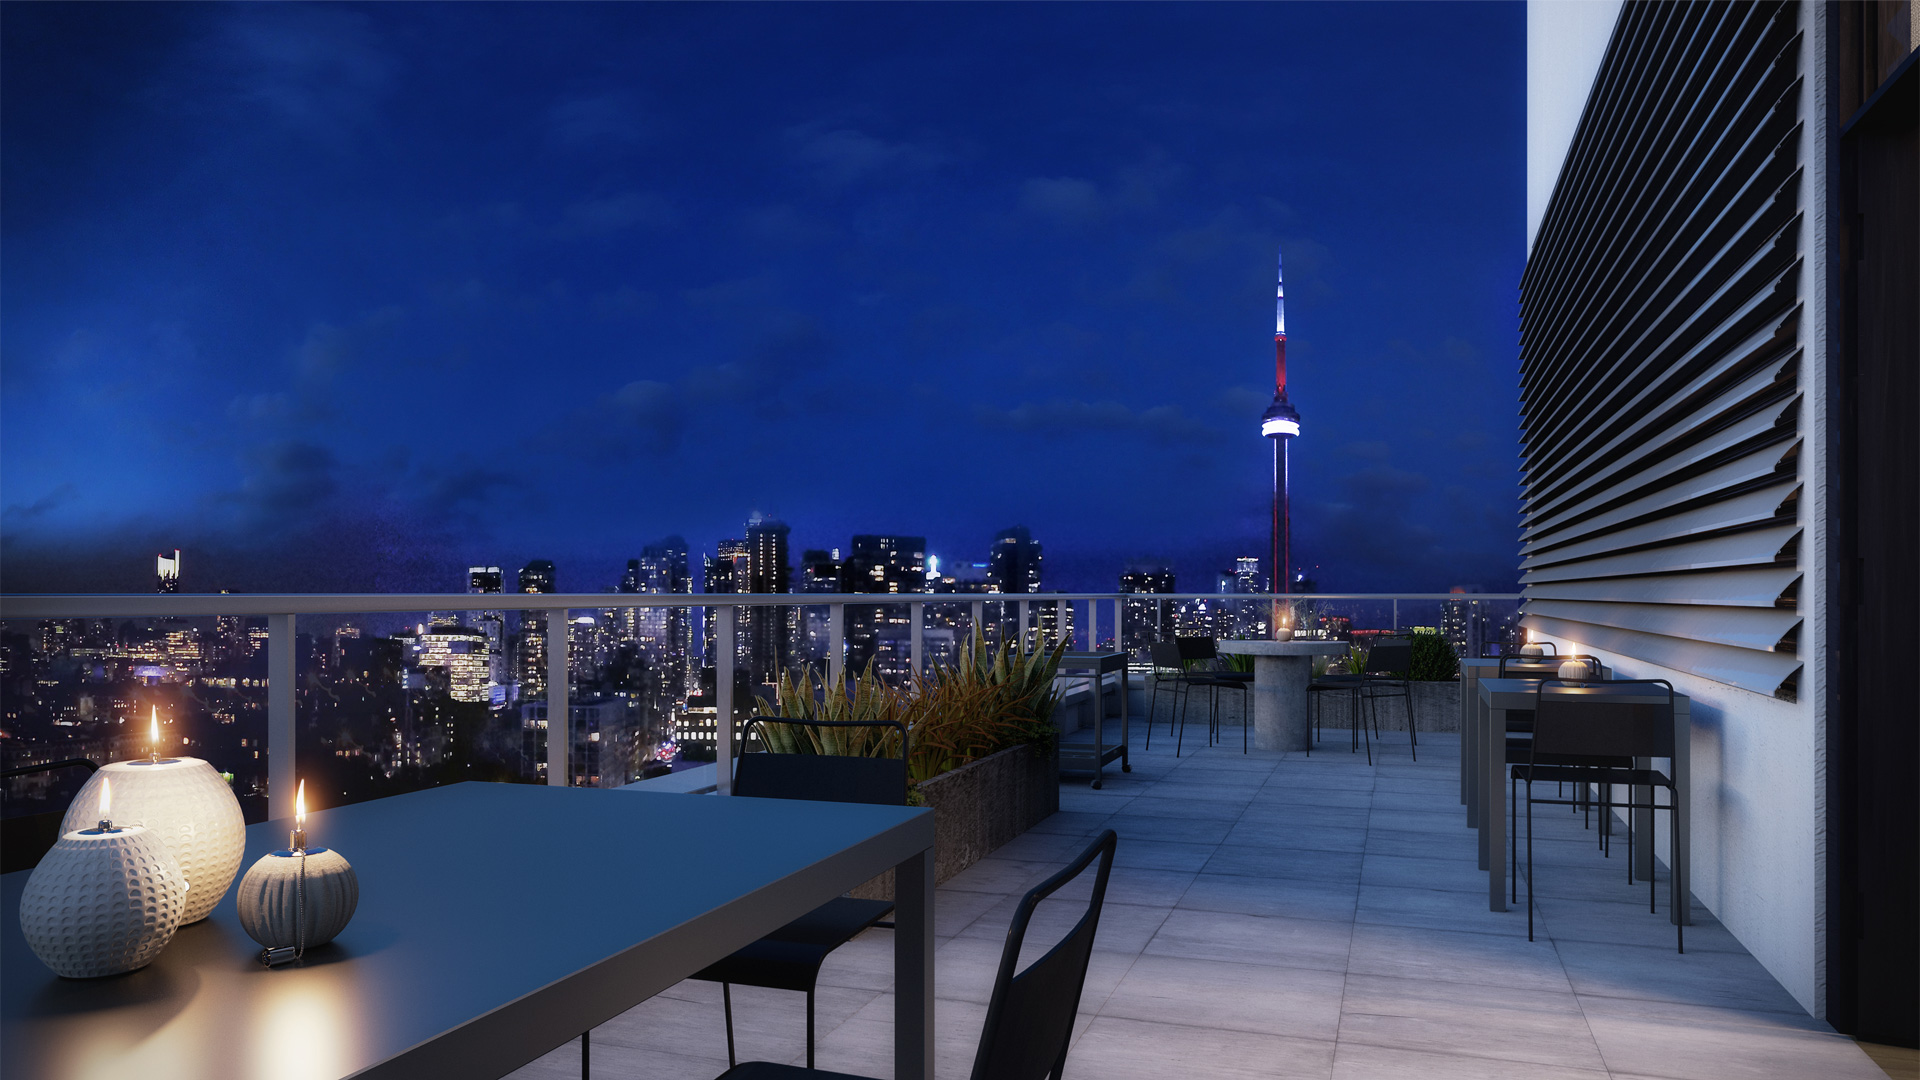 Concept art of Kingly Residences rooftop deck at night with tablets, candles and CN Tower lights in background.